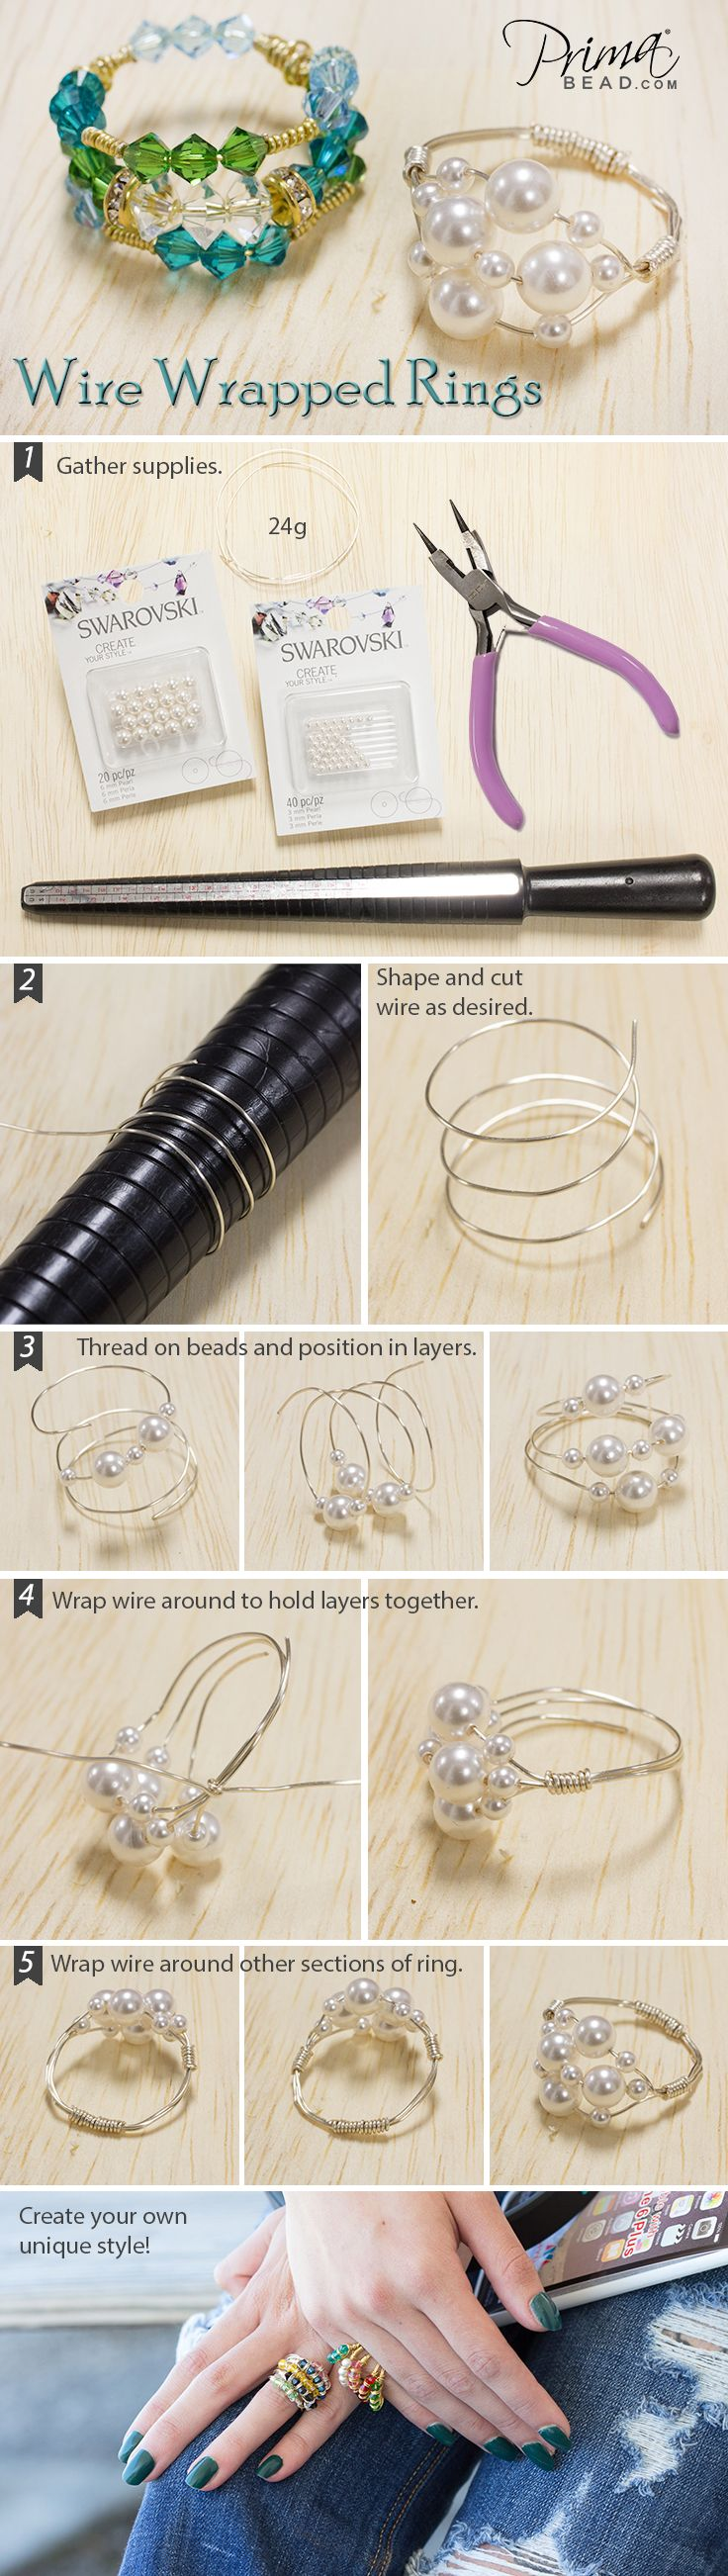 anleitung draht ring mit perlen biegen wire wrapped rings jewelry pinterest bisuteria. Black Bedroom Furniture Sets. Home Design Ideas